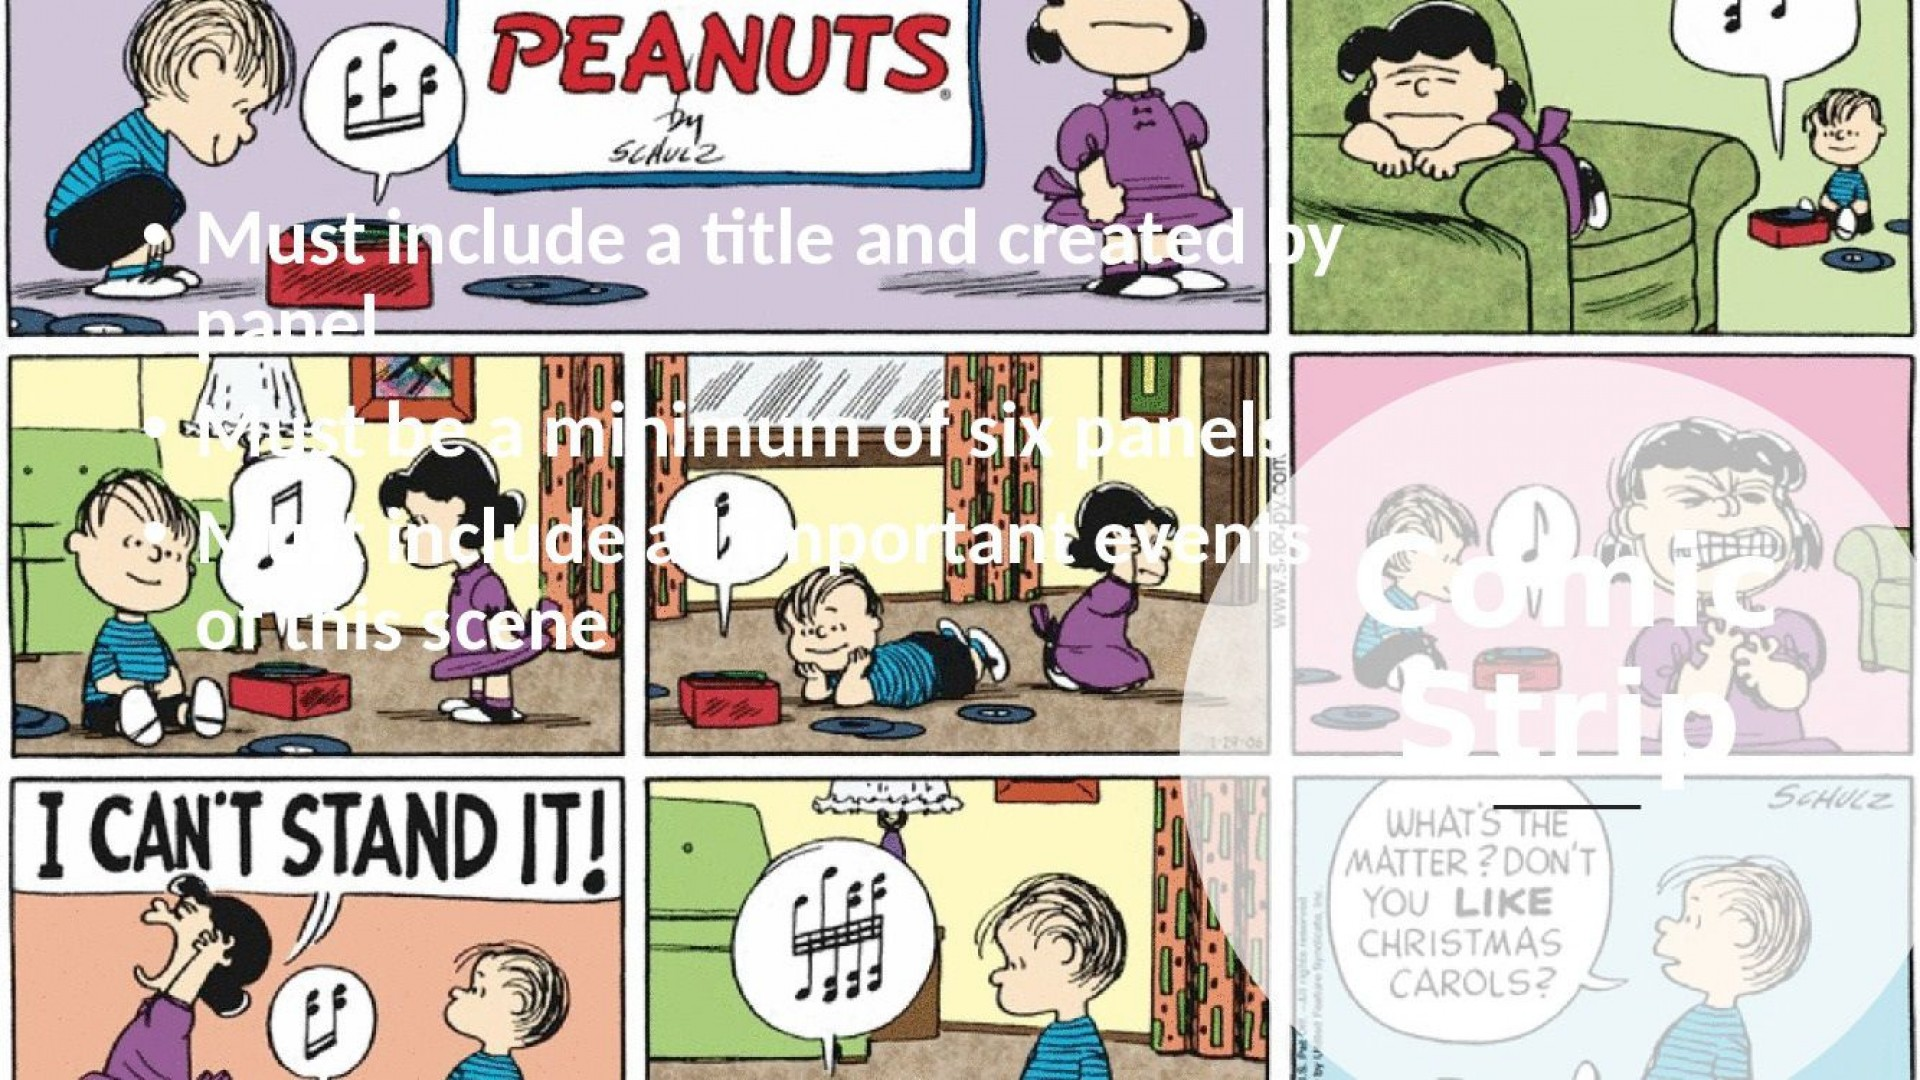 005 Top Comic Strip Microsoft Word Photo  Making A With In Template1920